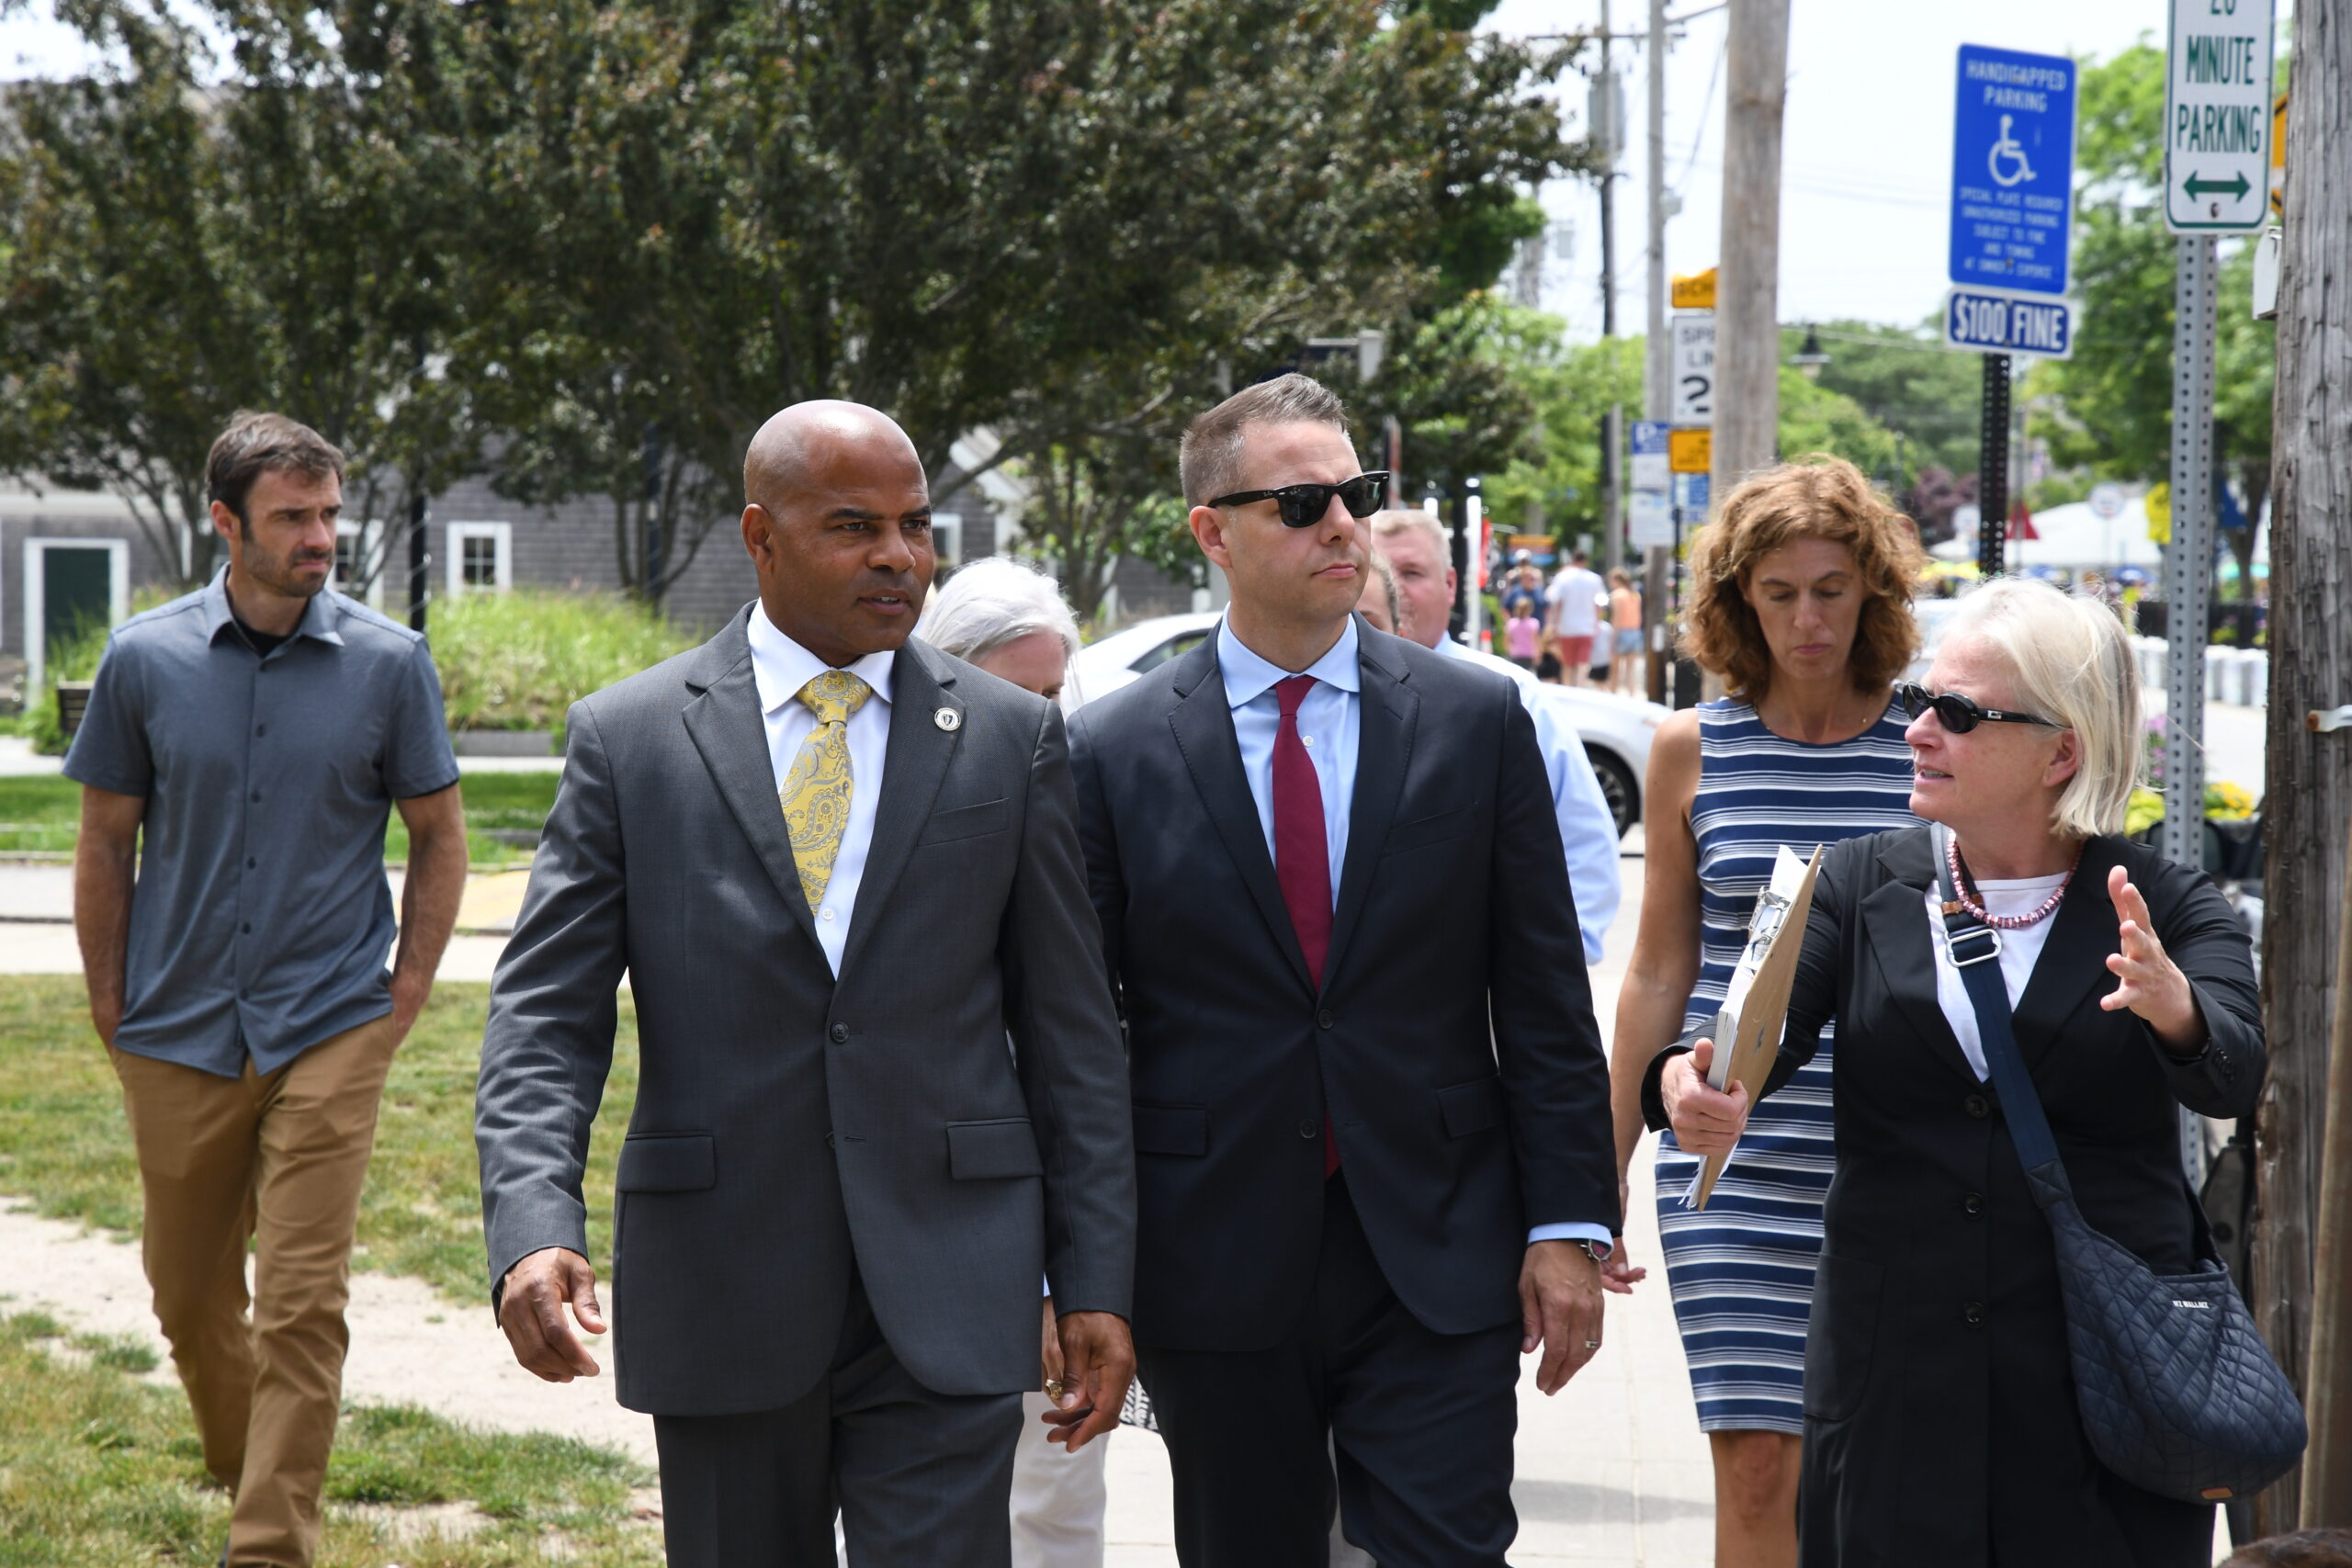 Elizabeth Wurfbain of the Hyannis Main Street Business Improvement District leads State Representative Kip Diggs and James Arciero on a tour of downtown Hyannis.